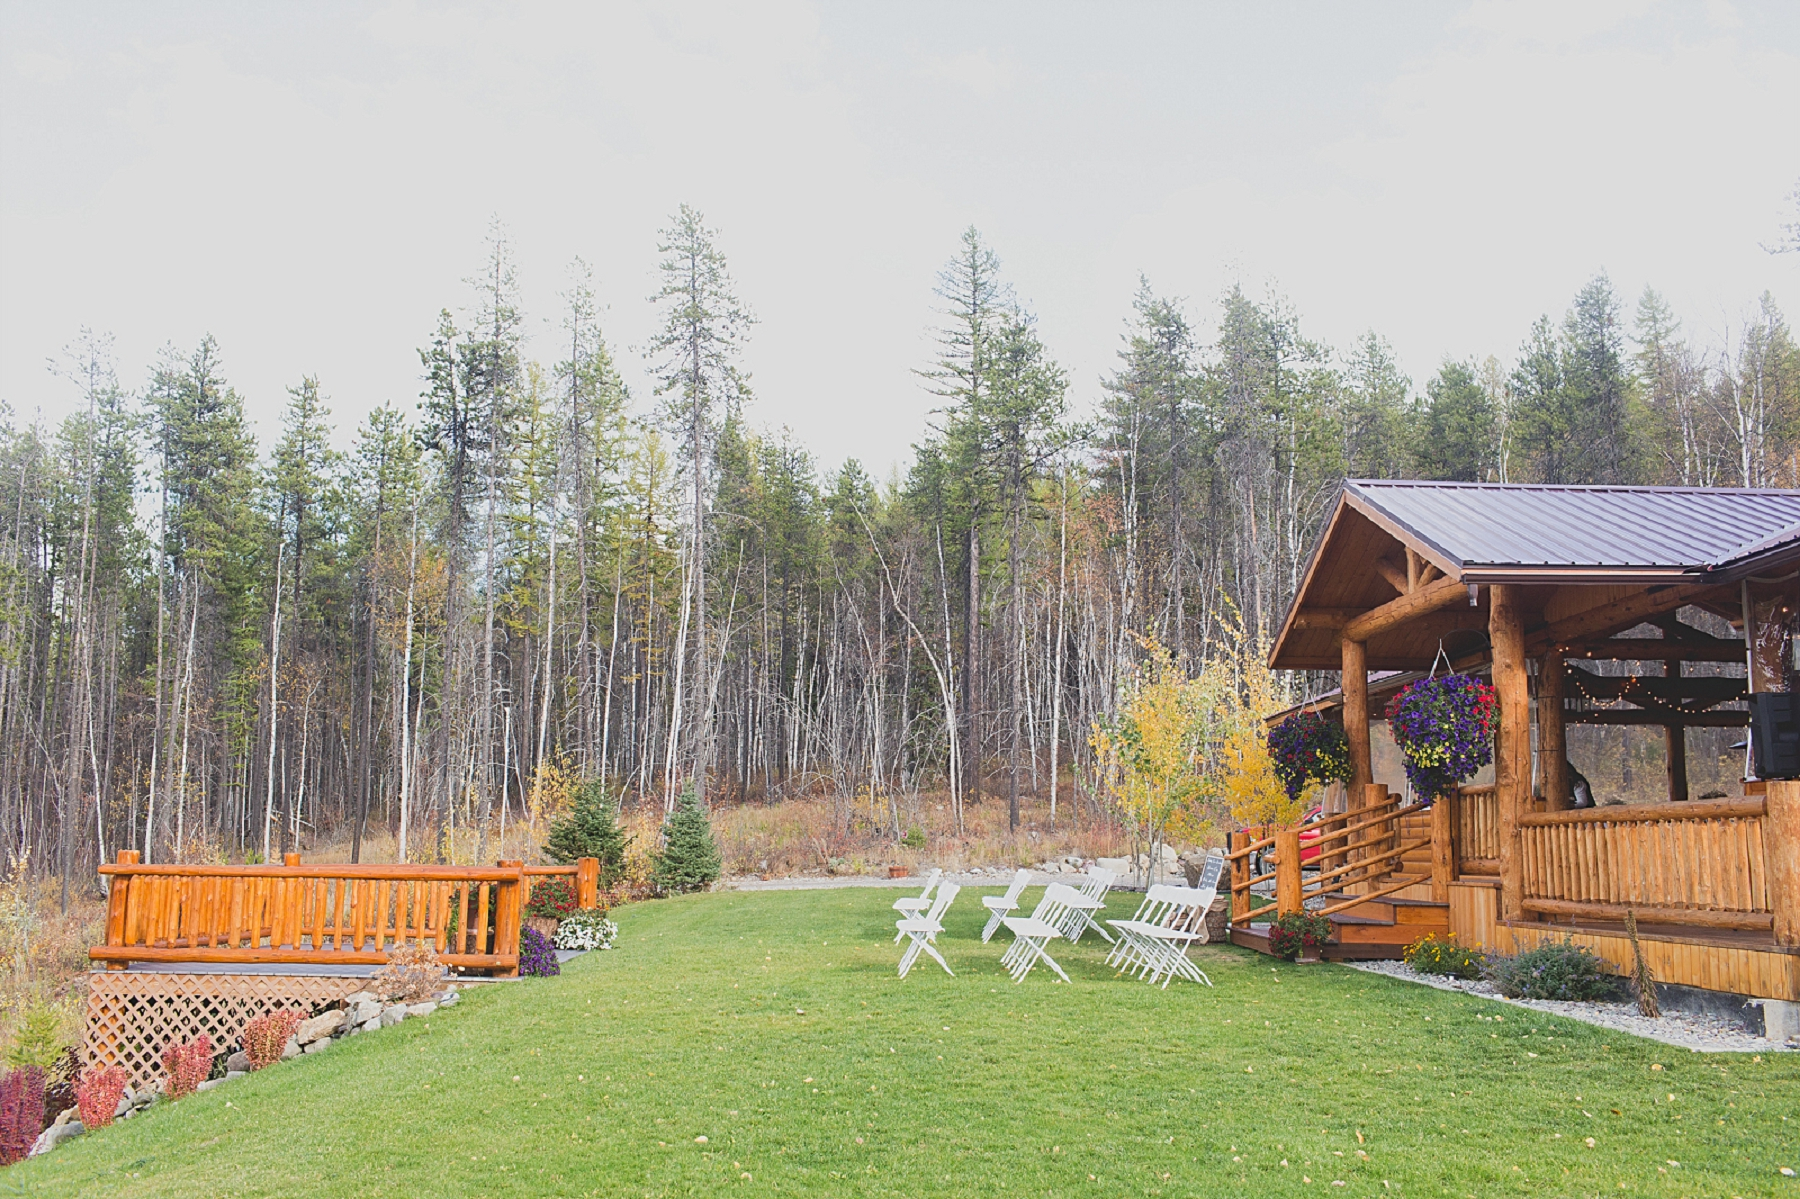 Jennifer_Mooney_photo_glacier_outdoor_center_wedding_montana_fall_elegant_rustic_romantic-67.jpg